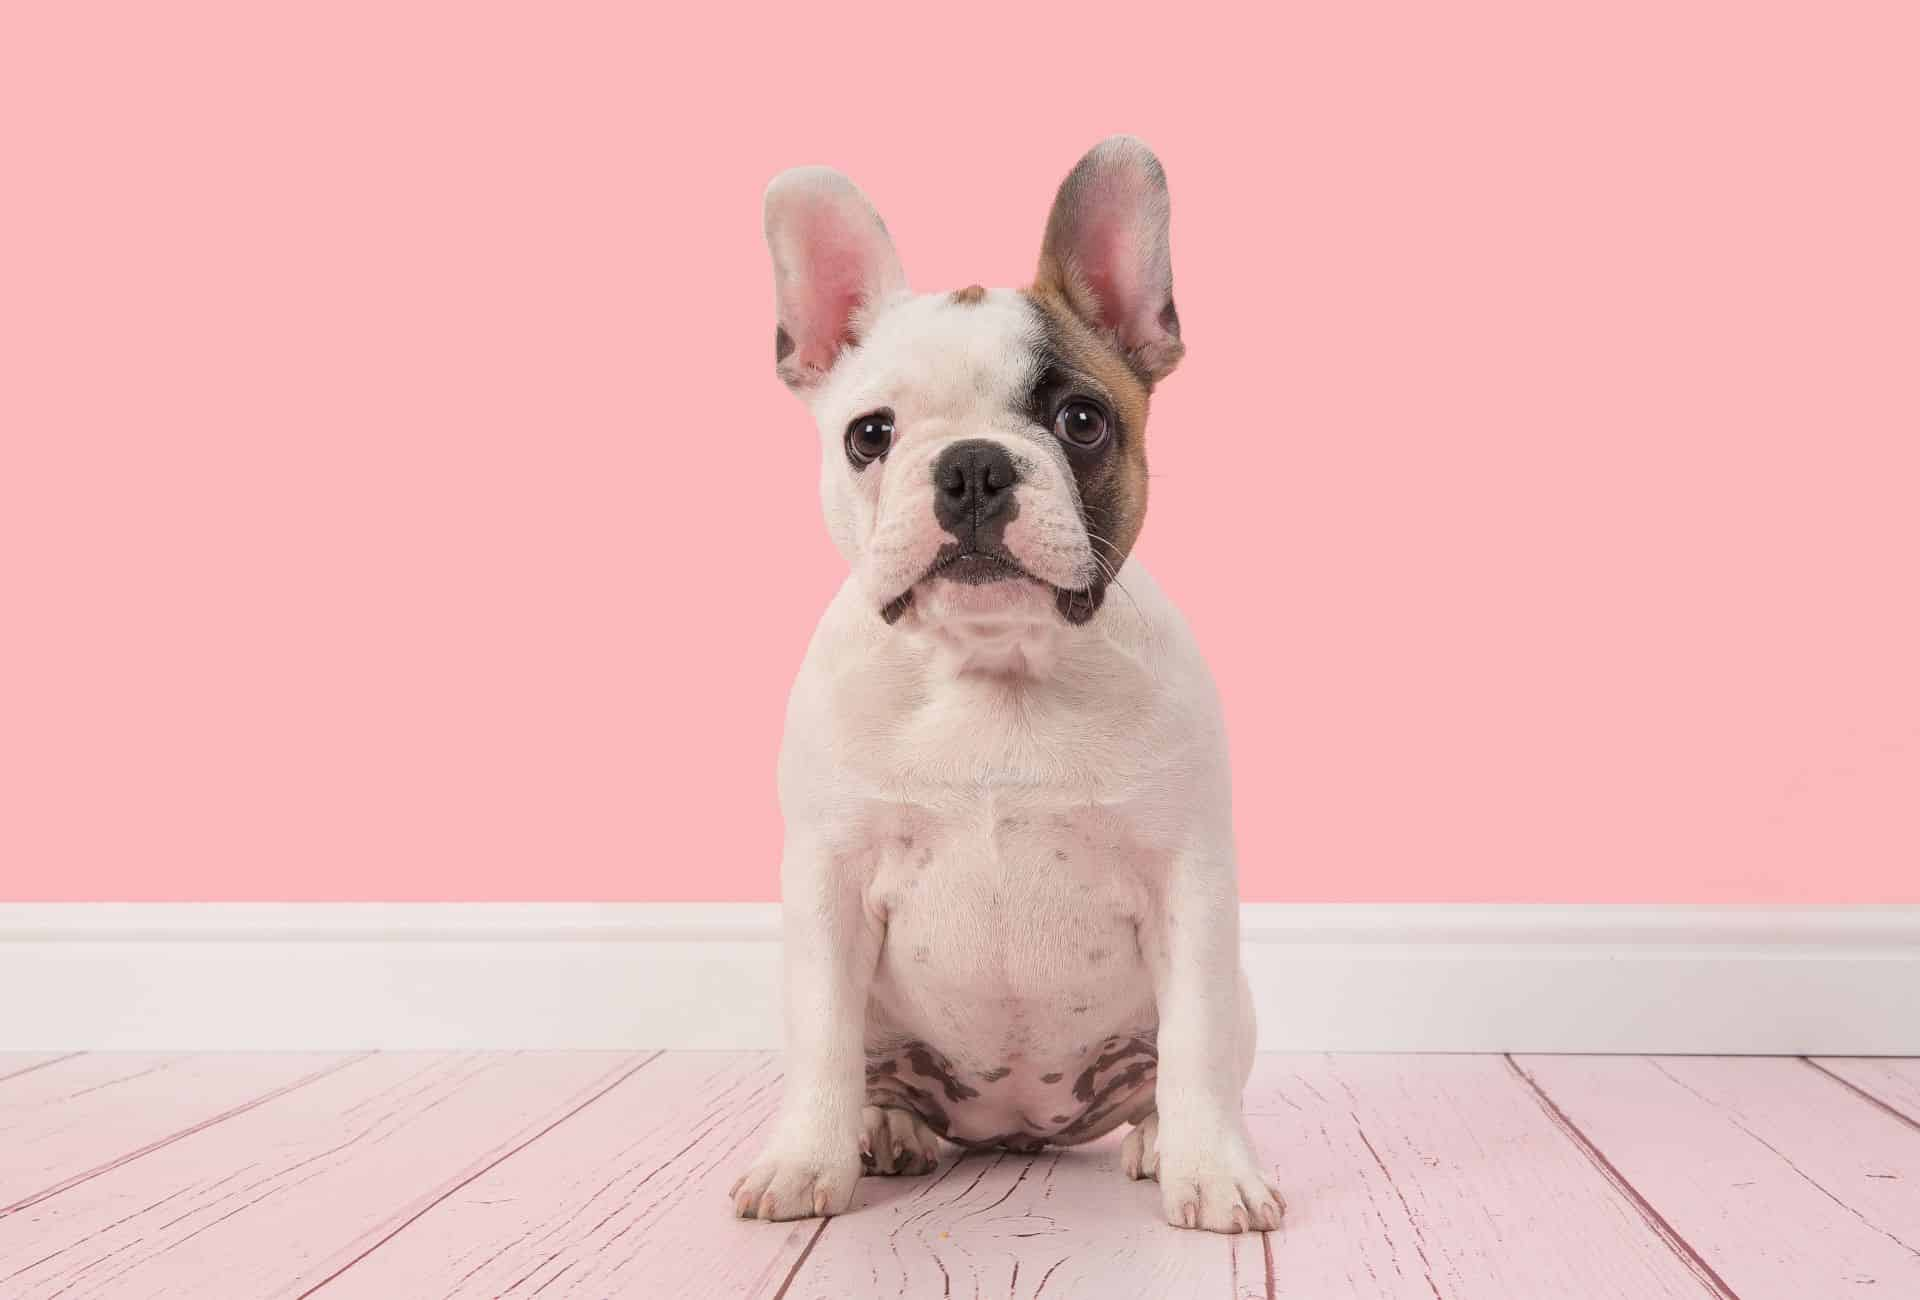 White French Bulldog puppy with black nose and brown on the left face side sits in front of pink background.